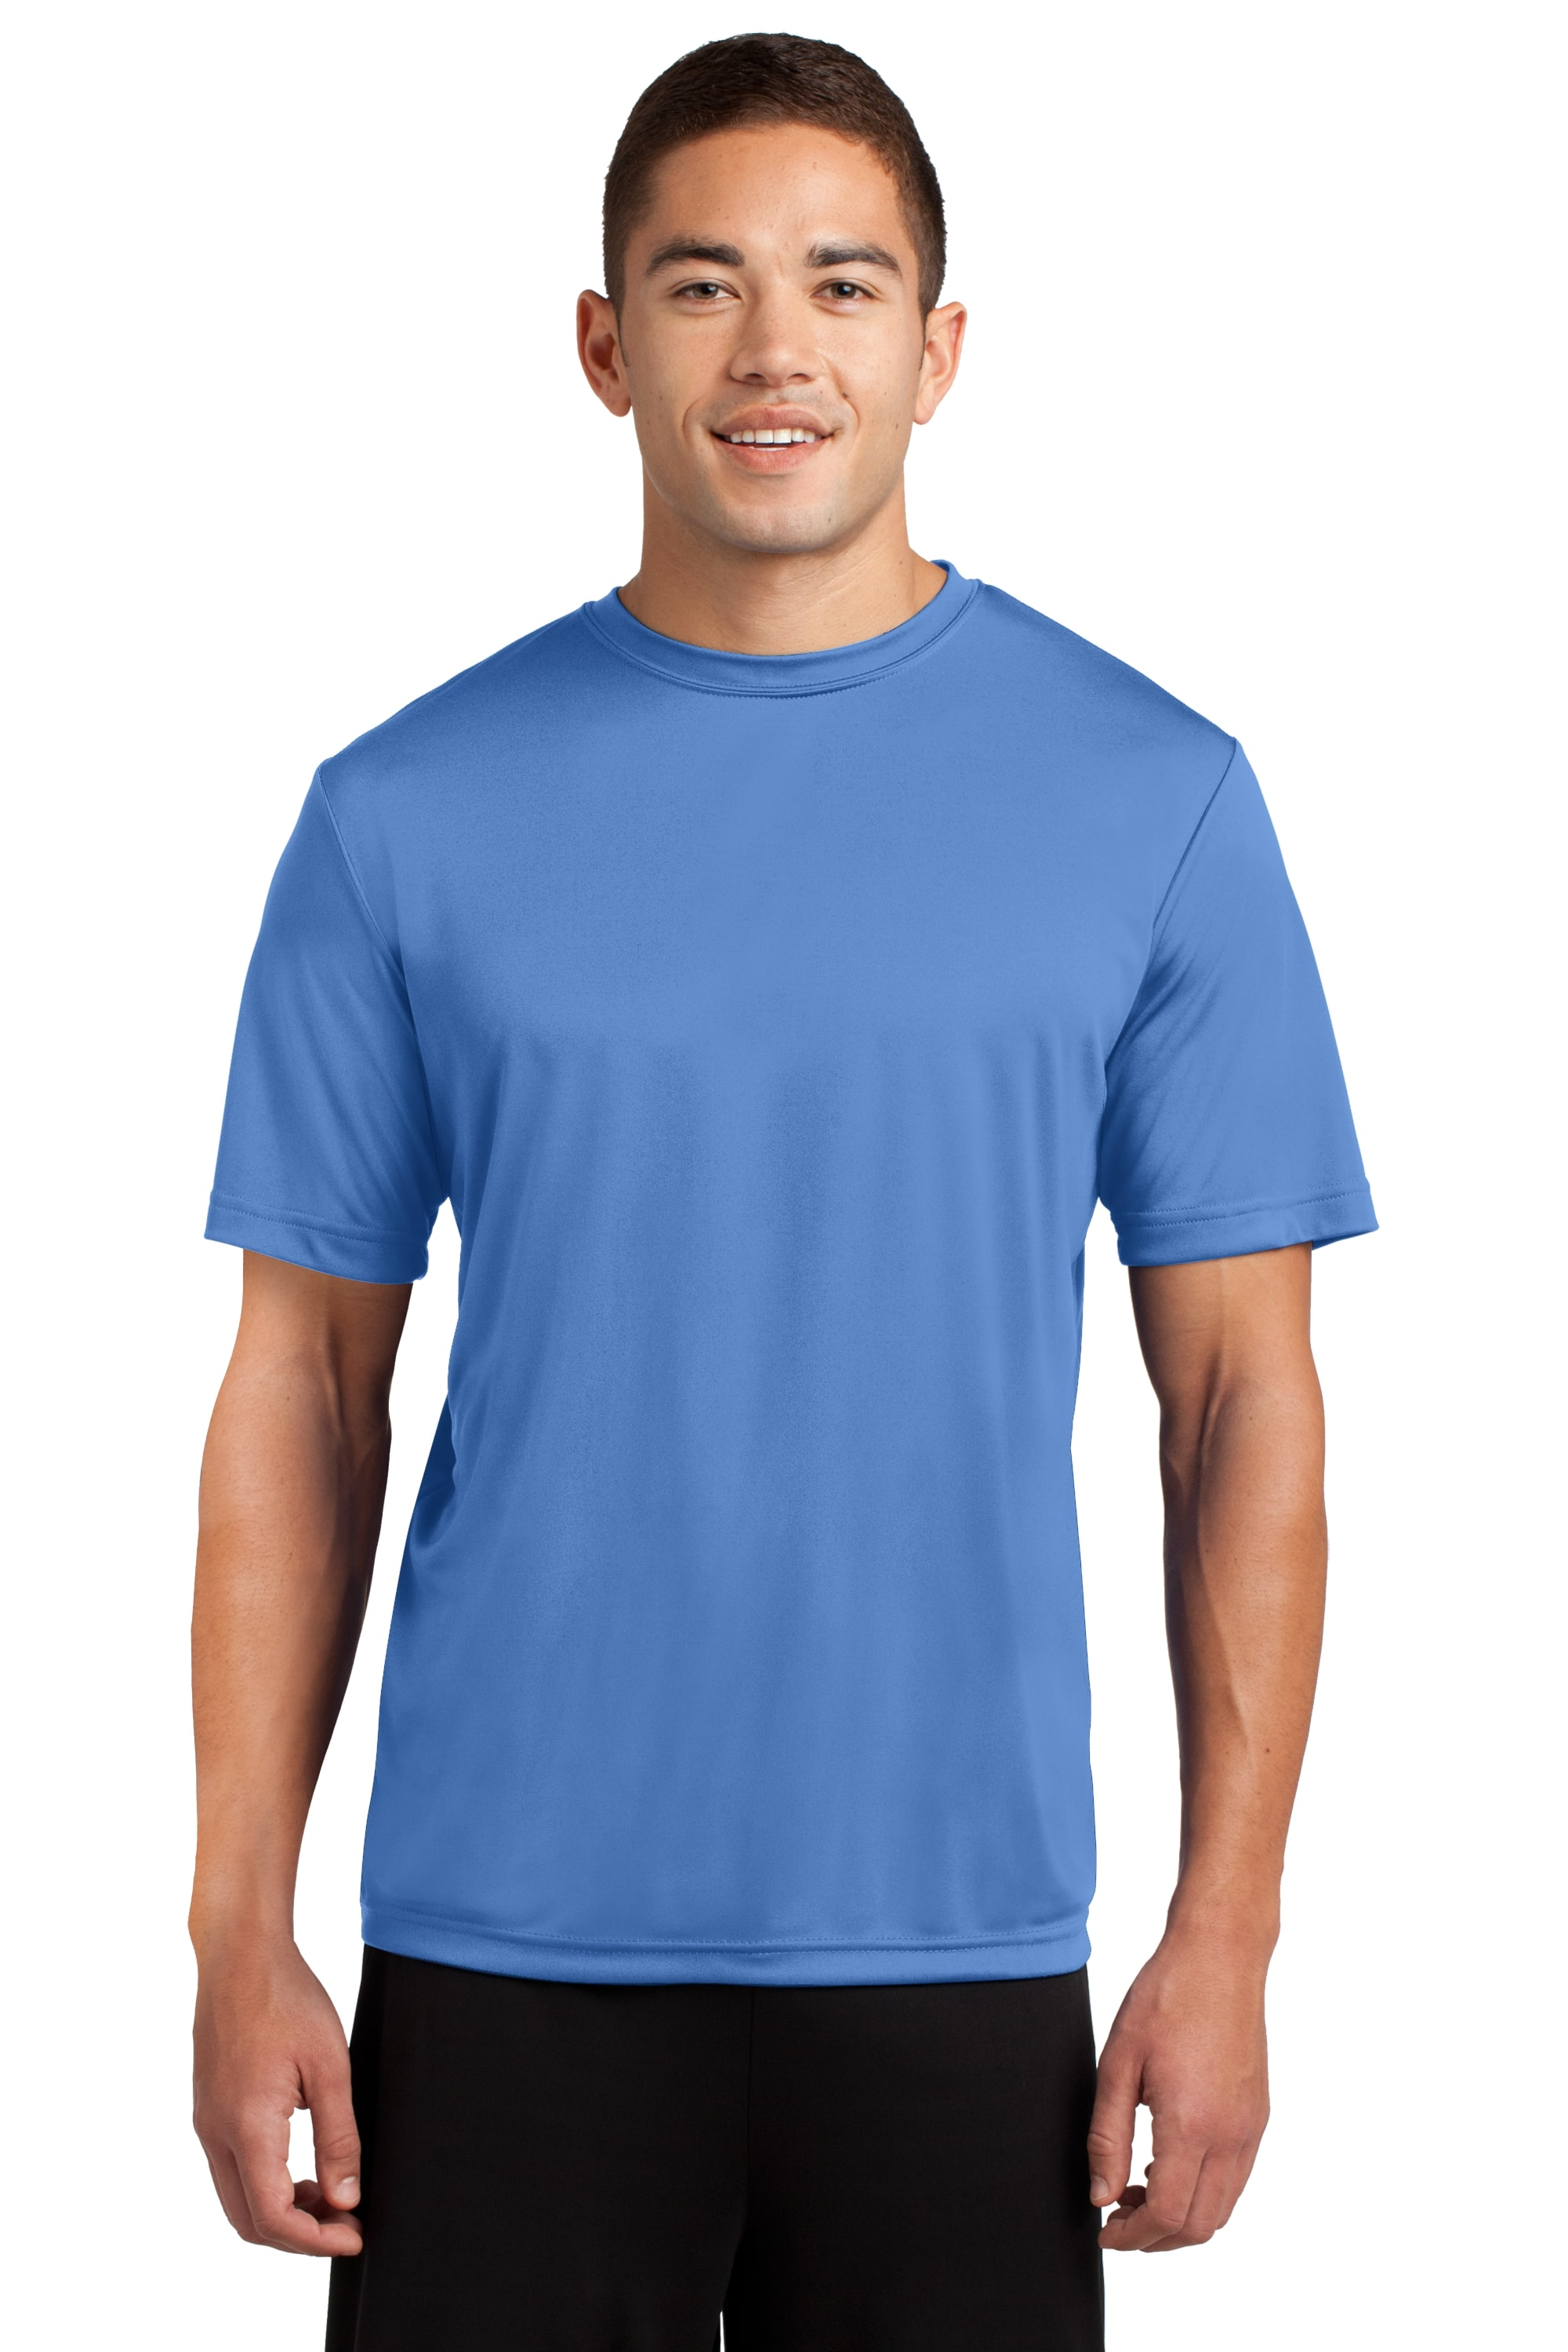 St350 Sport Tek Posicharge Competitor Tee Posicharge technology helps colors and logos stay vibrant longer. st350 sport tek posicharge competitor tee